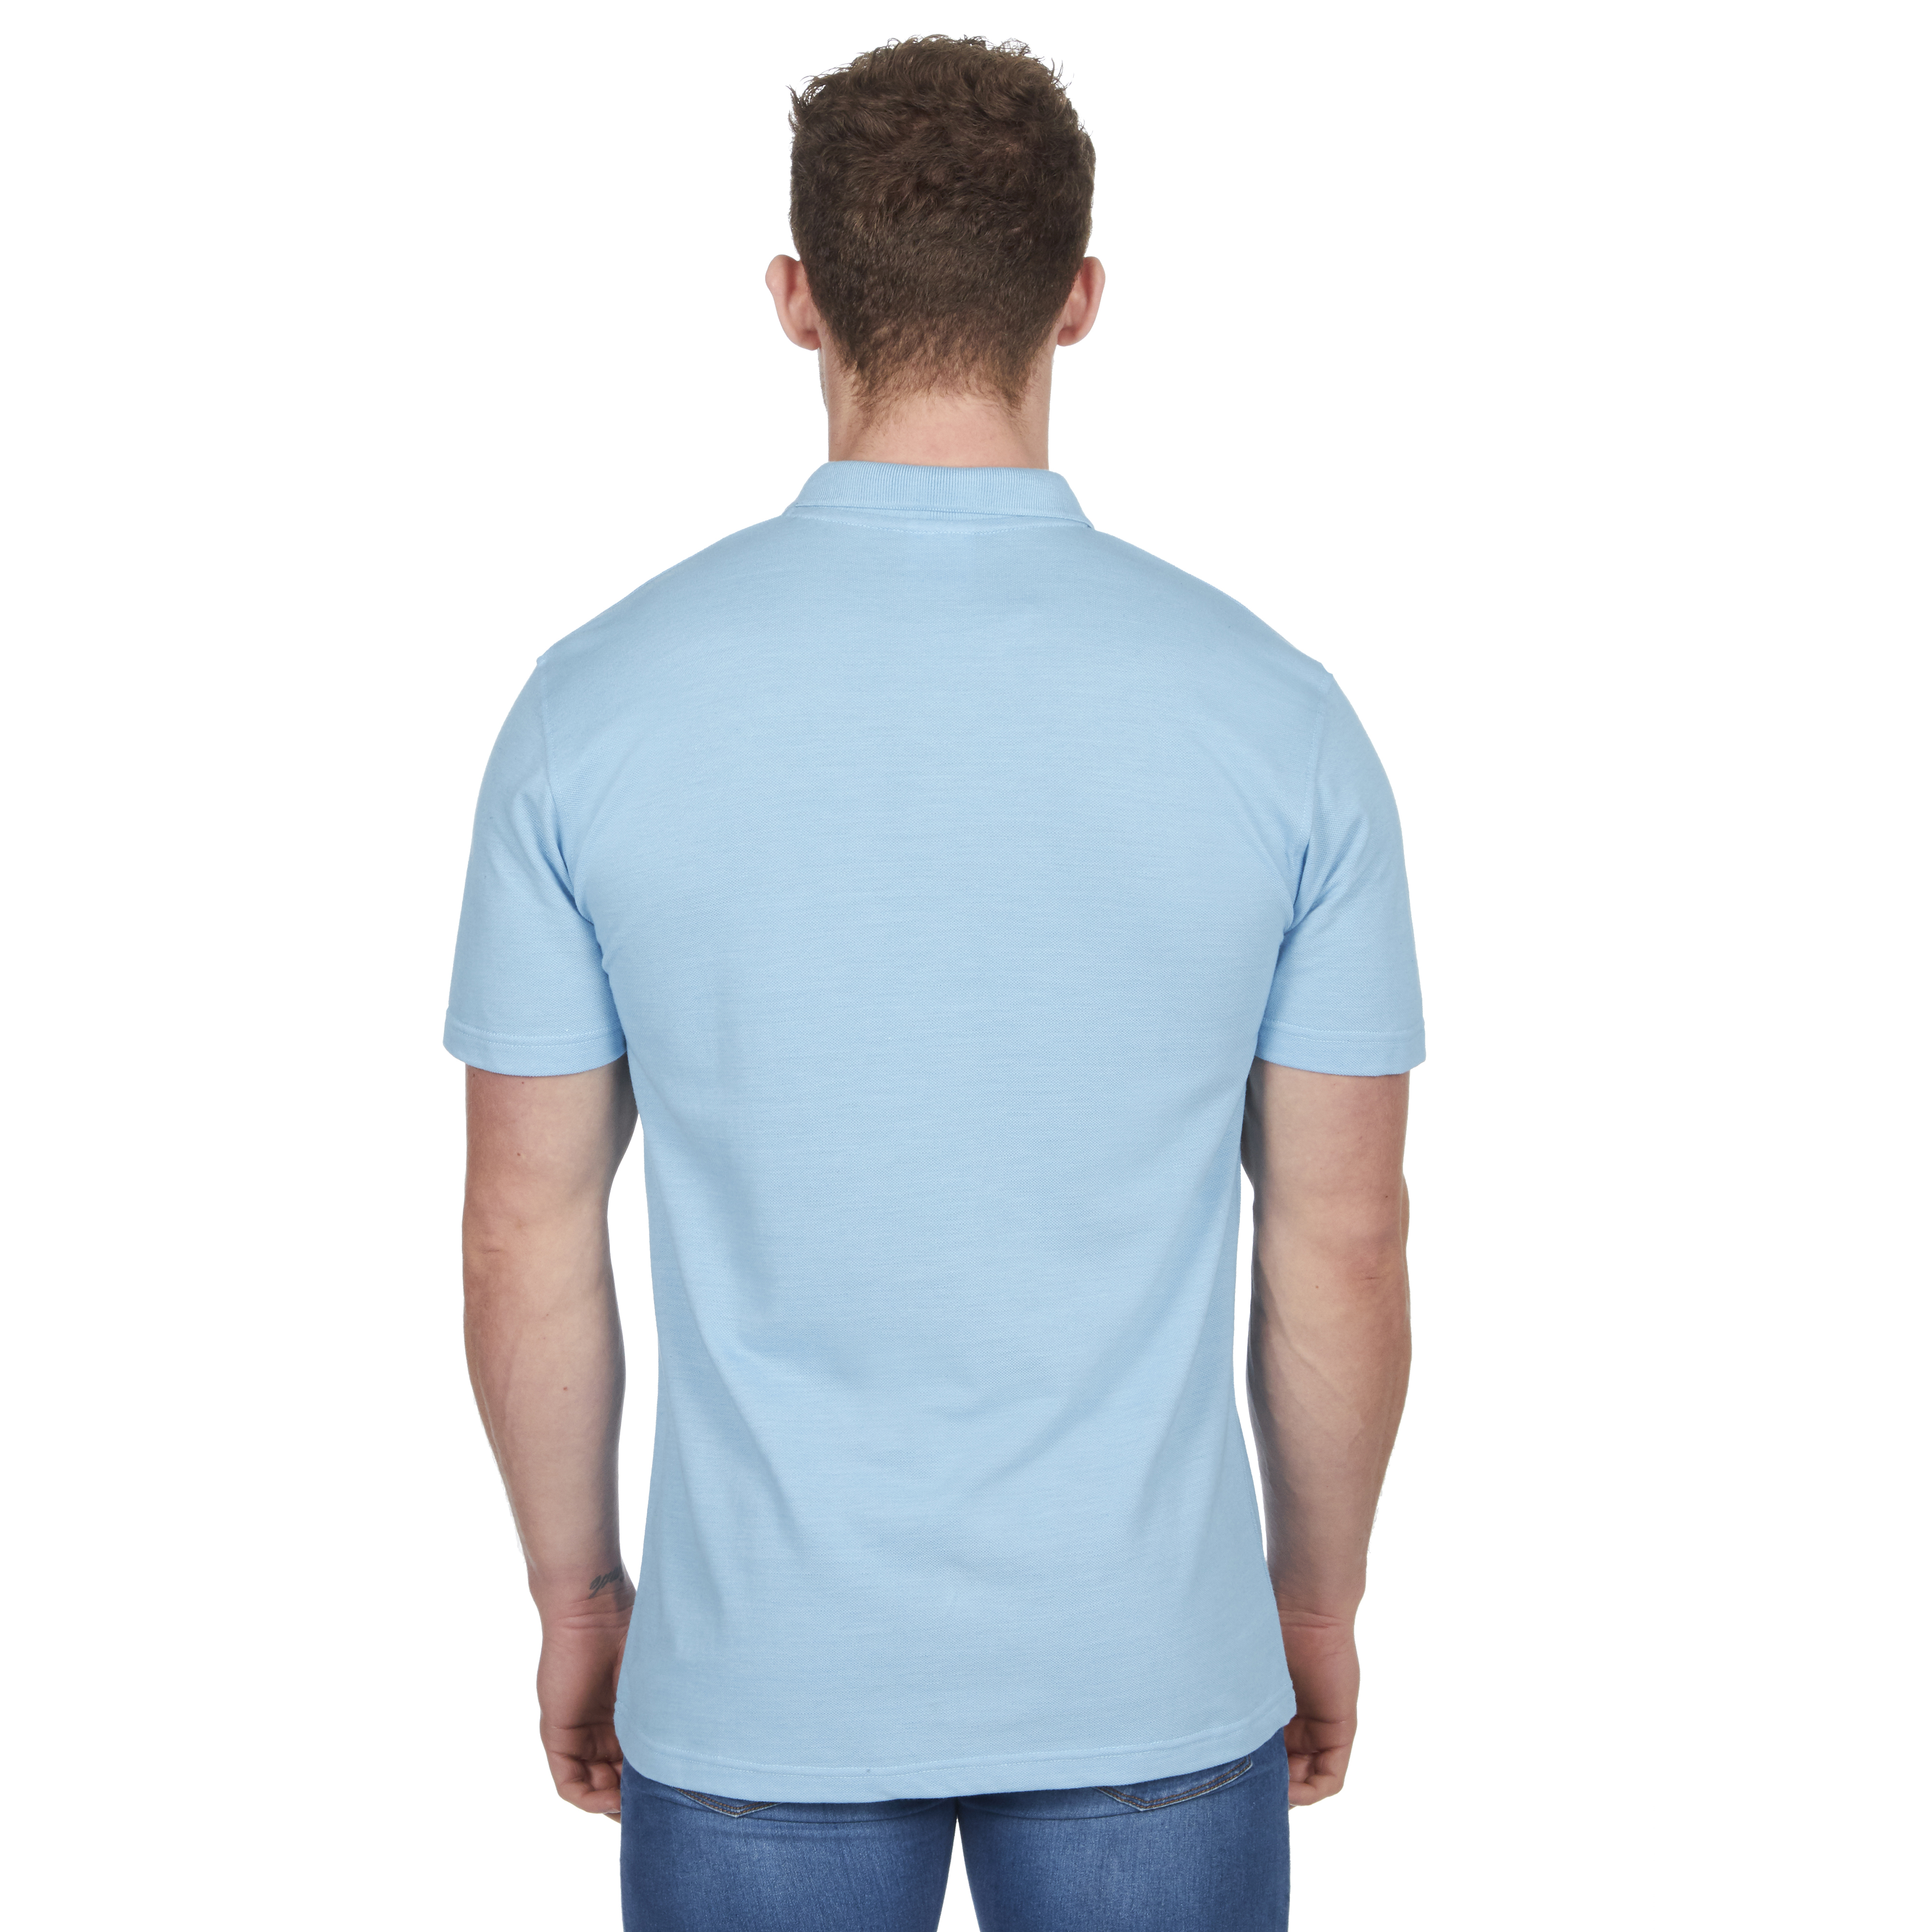 Mens-Classic-Polo-Top-Plus-Size-T-Shirt-Plain-Shirt-Big-And-Tall-Short-Sleeve thumbnail 50